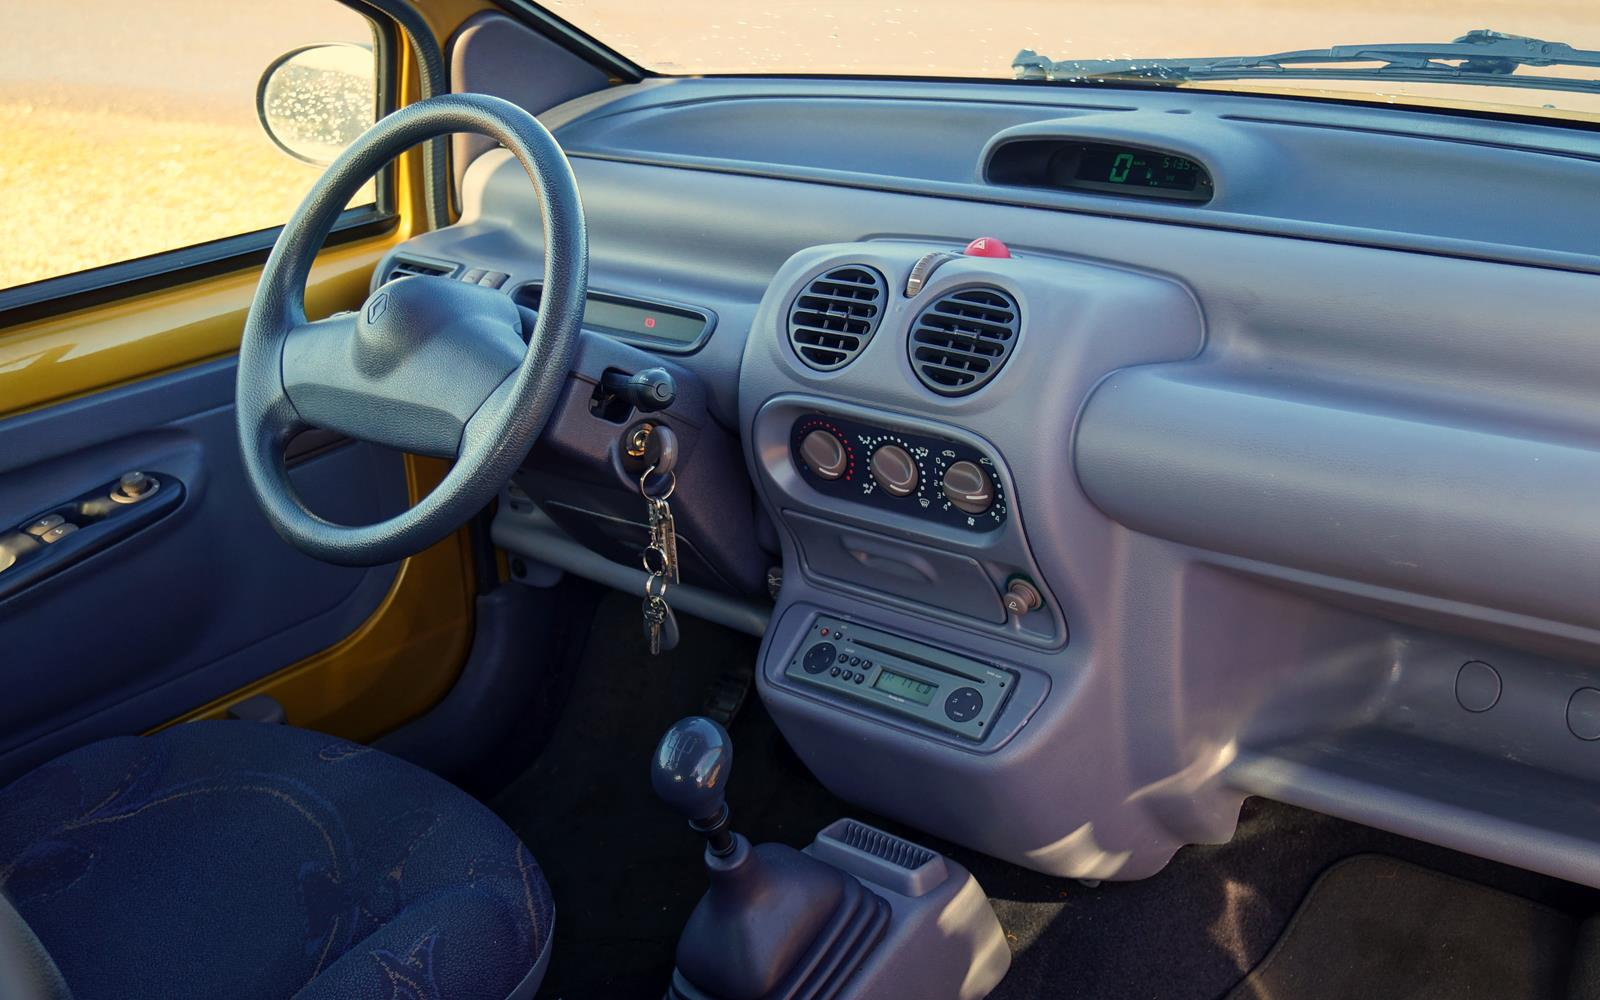 1998 Renault Twingo Photos, Informations, Articles - BestCarMag.com